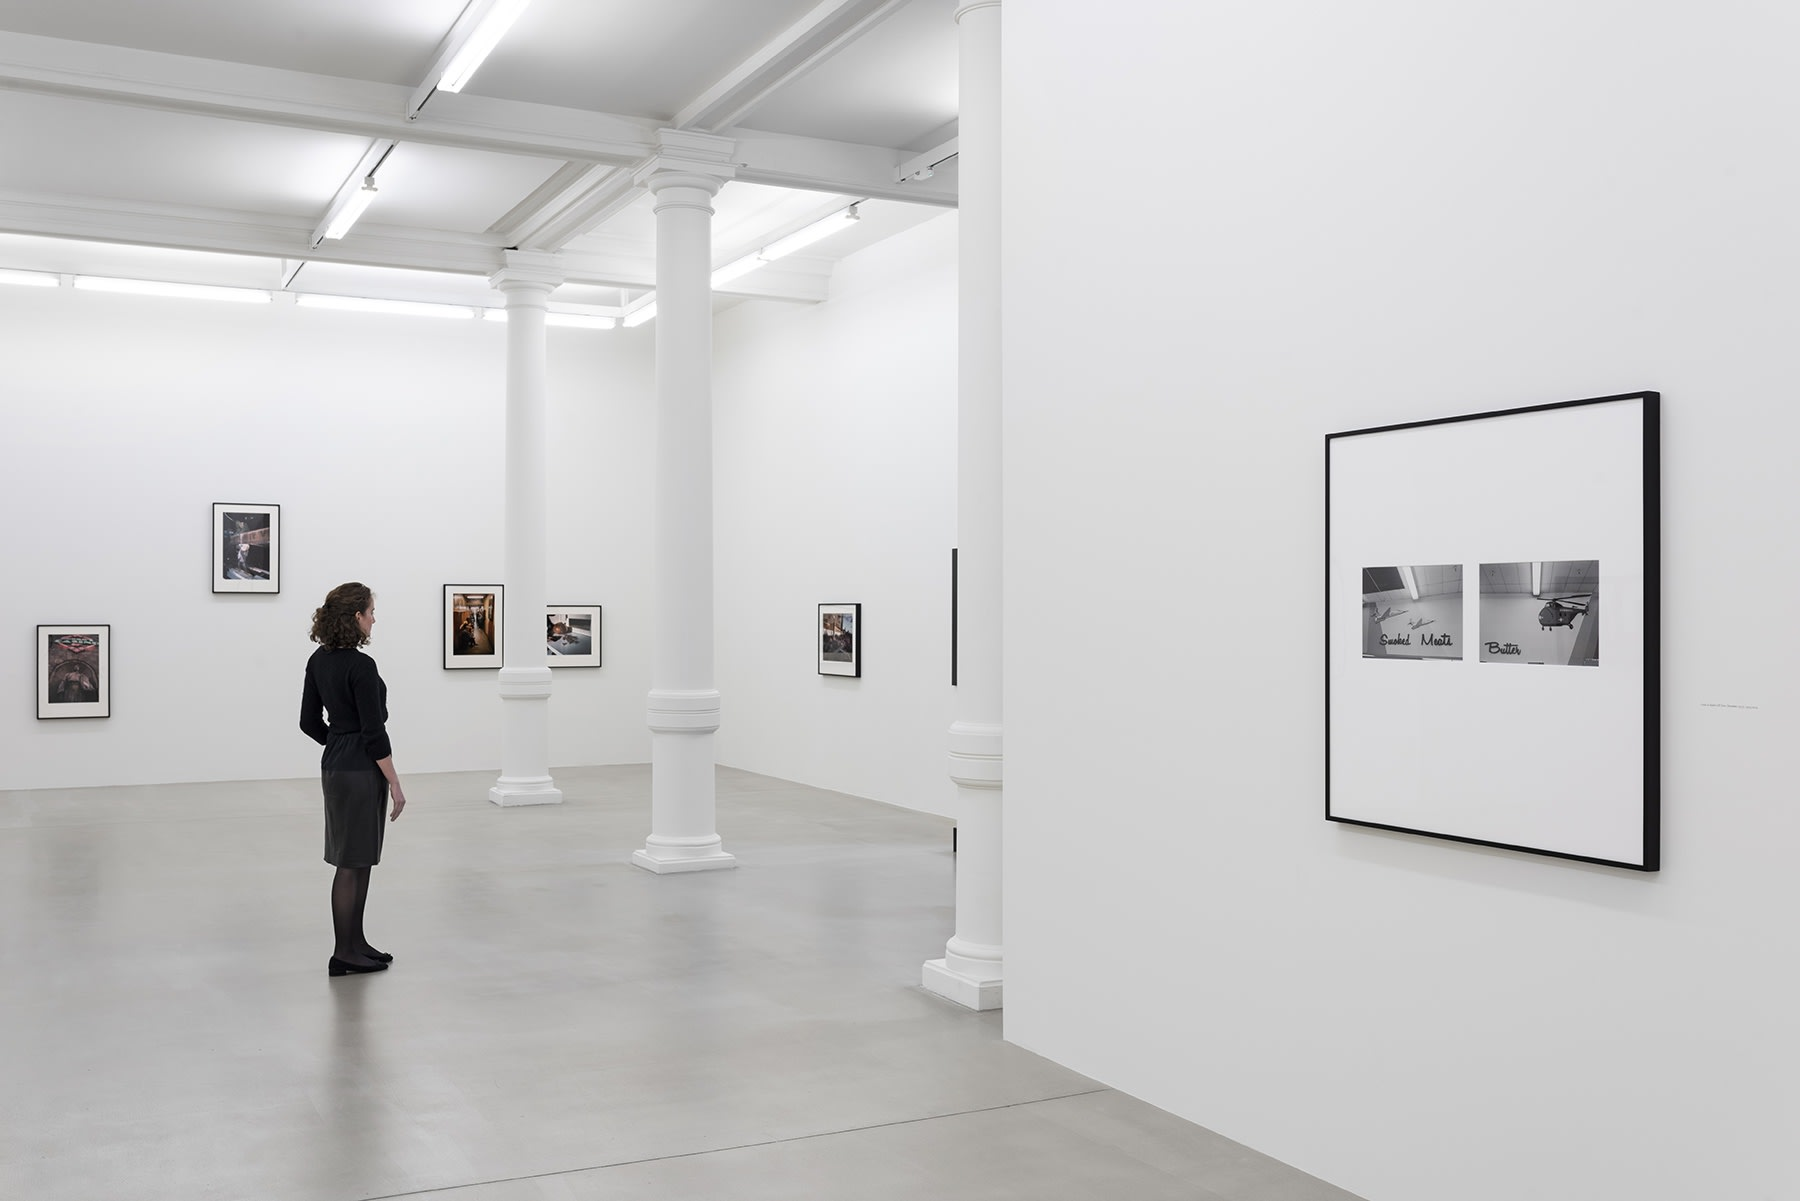 A person stands in front of a display of photographs on 2 walls.